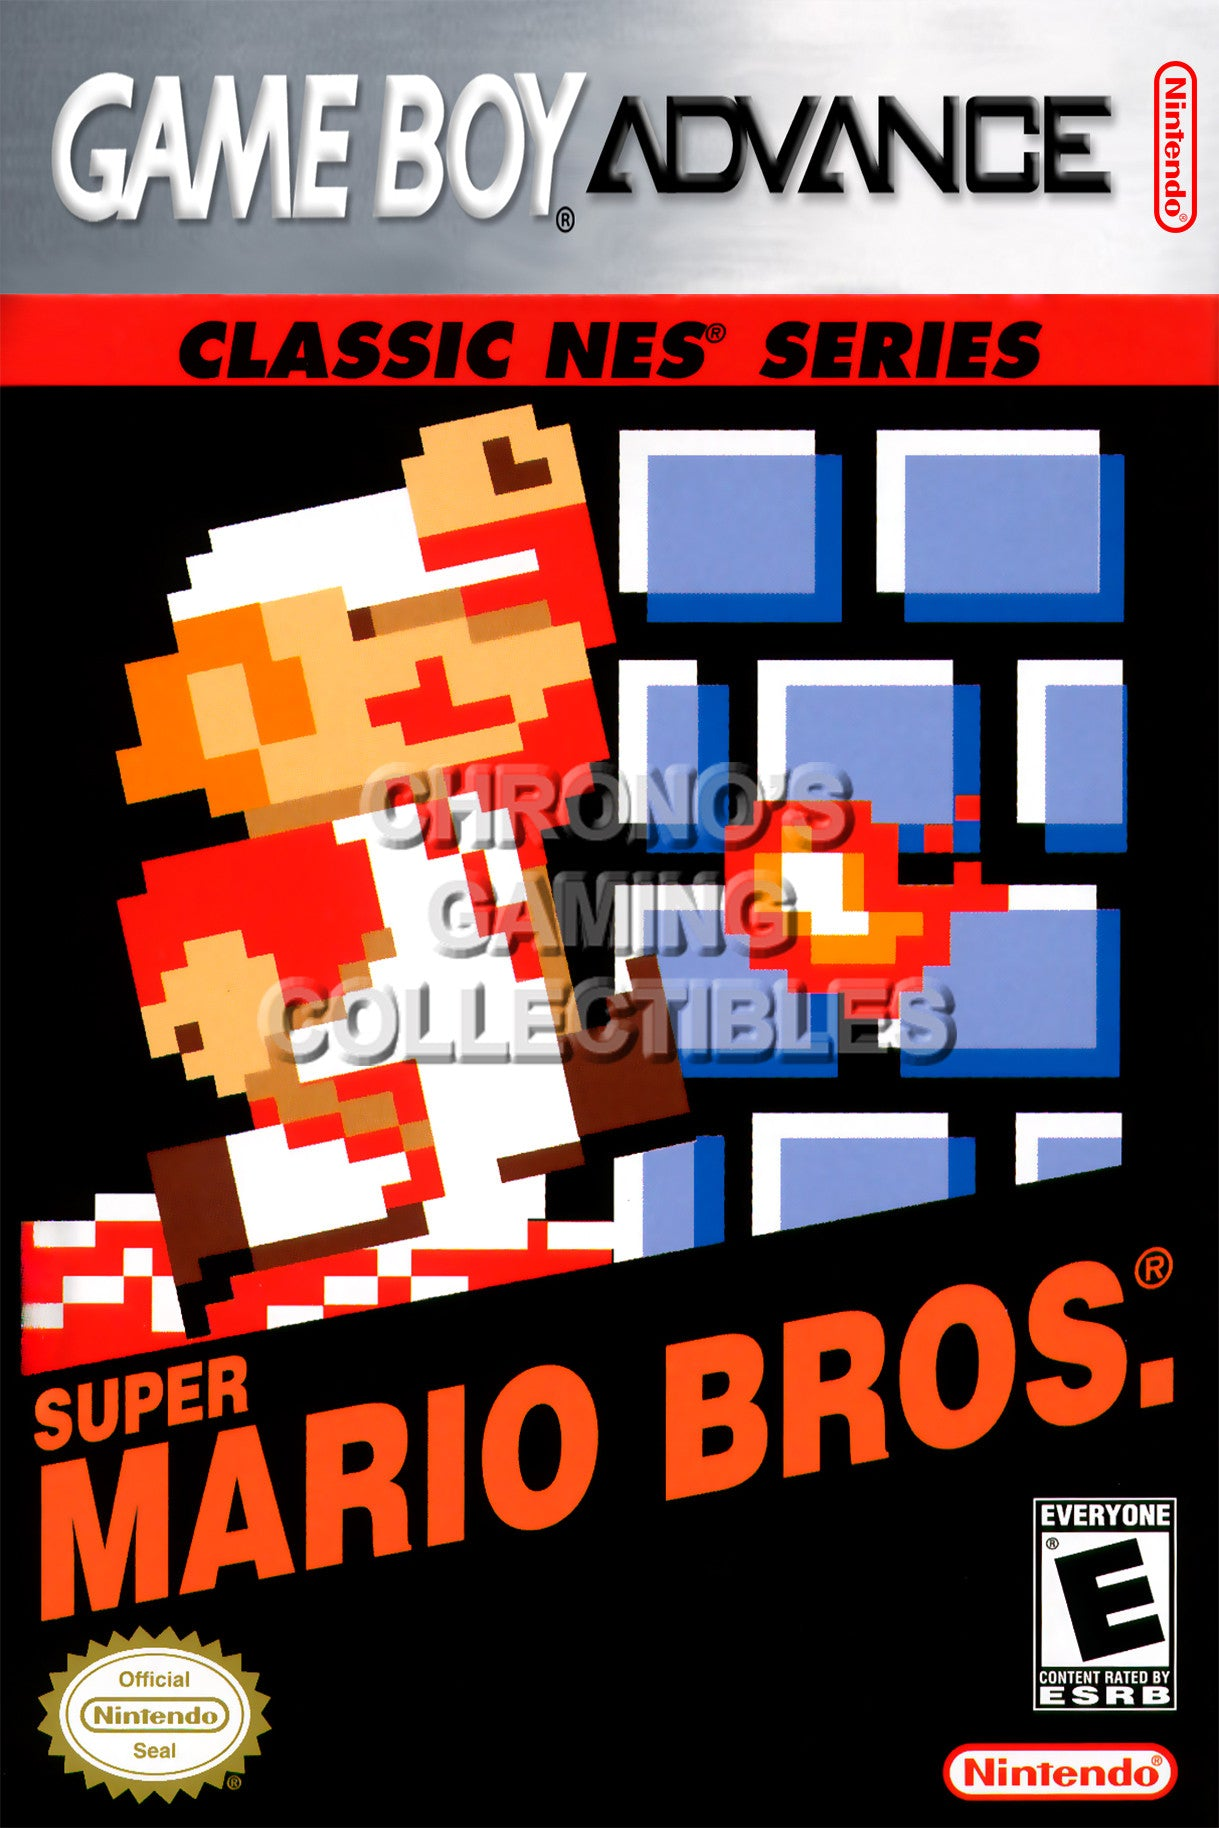 Classic Nintendo Game Boy Advance Video Games Poster Cgcposters